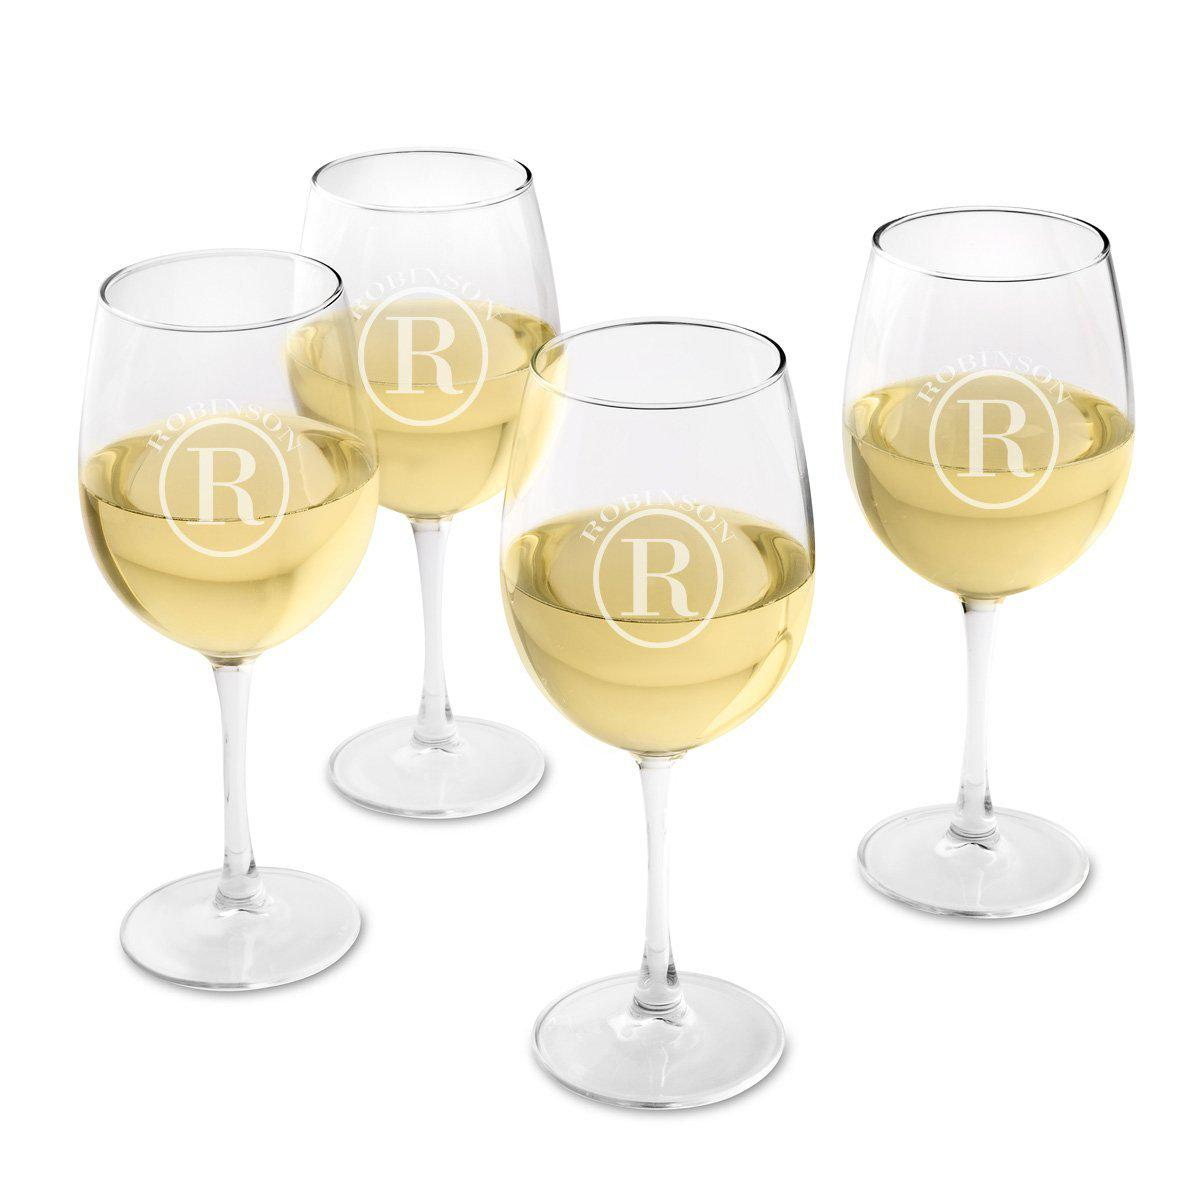 Personalized Set of 4  Wine Glasses - White Wine